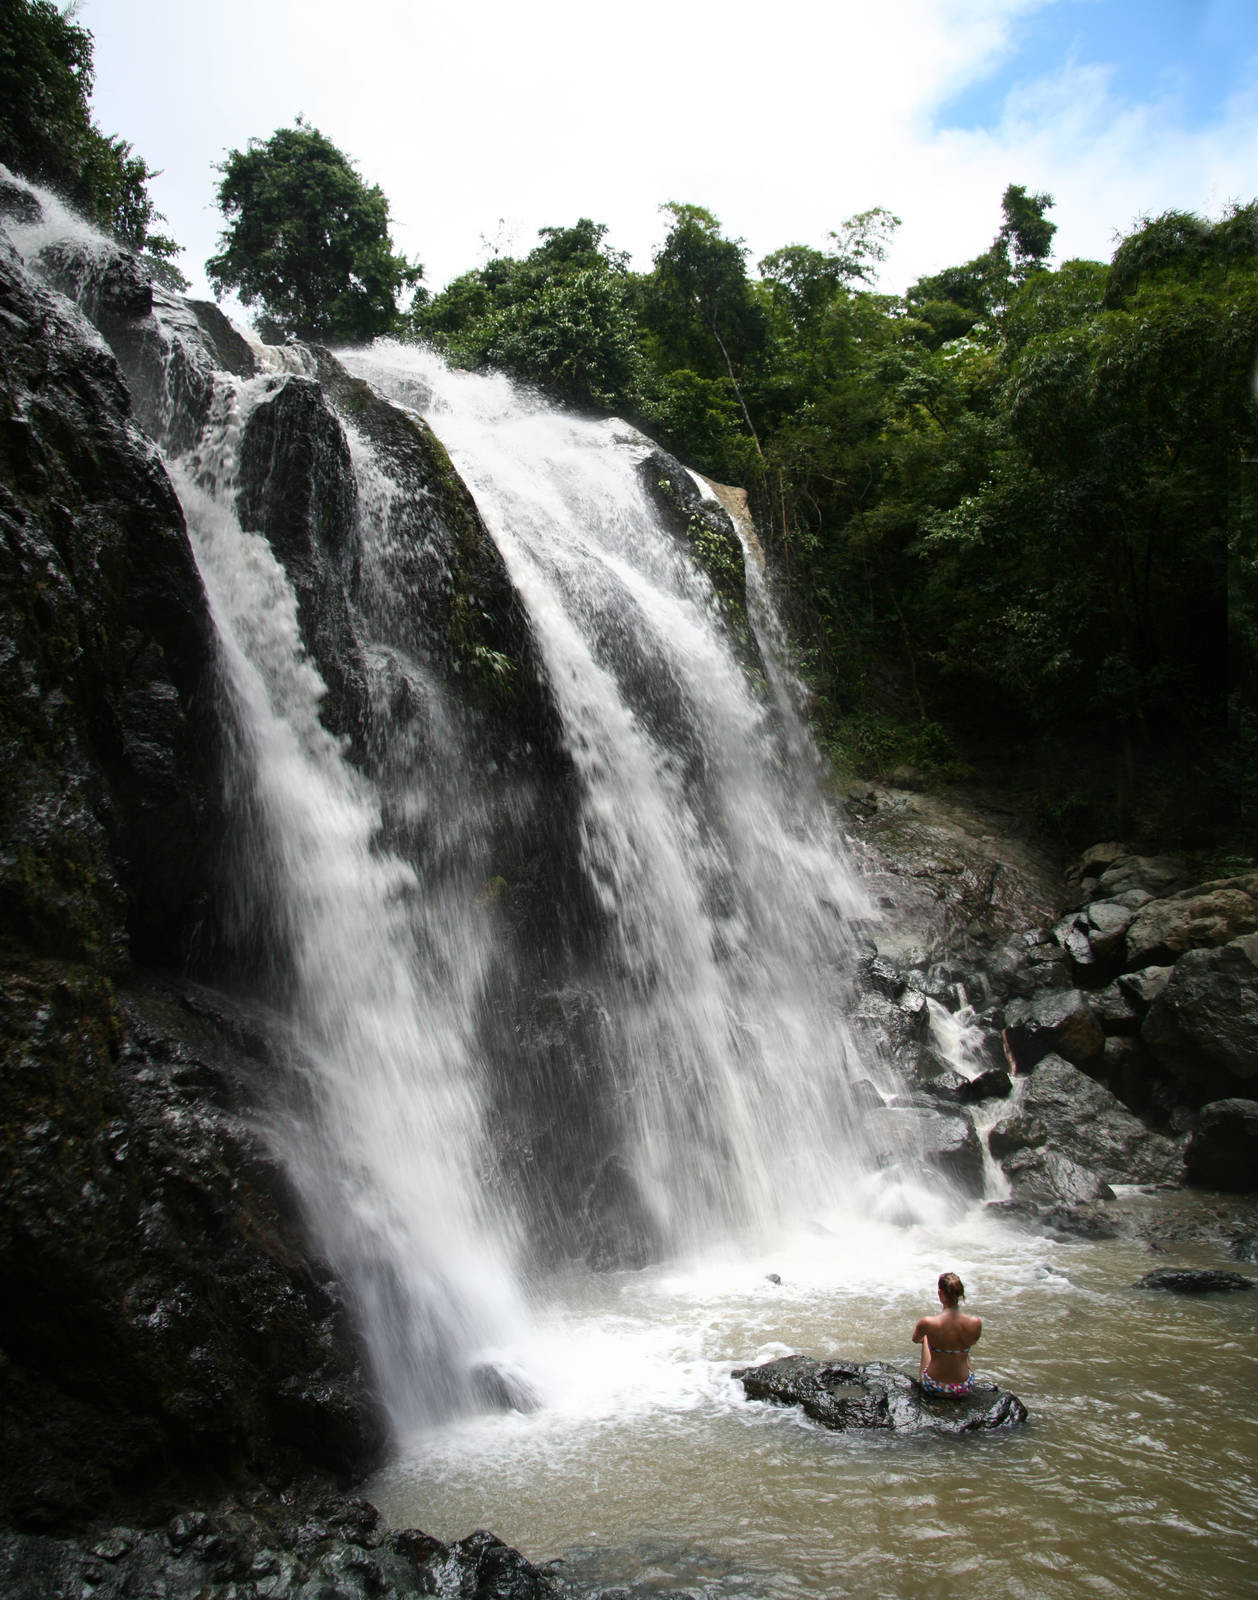 Argyle Waterfall - the tallest in Tobago